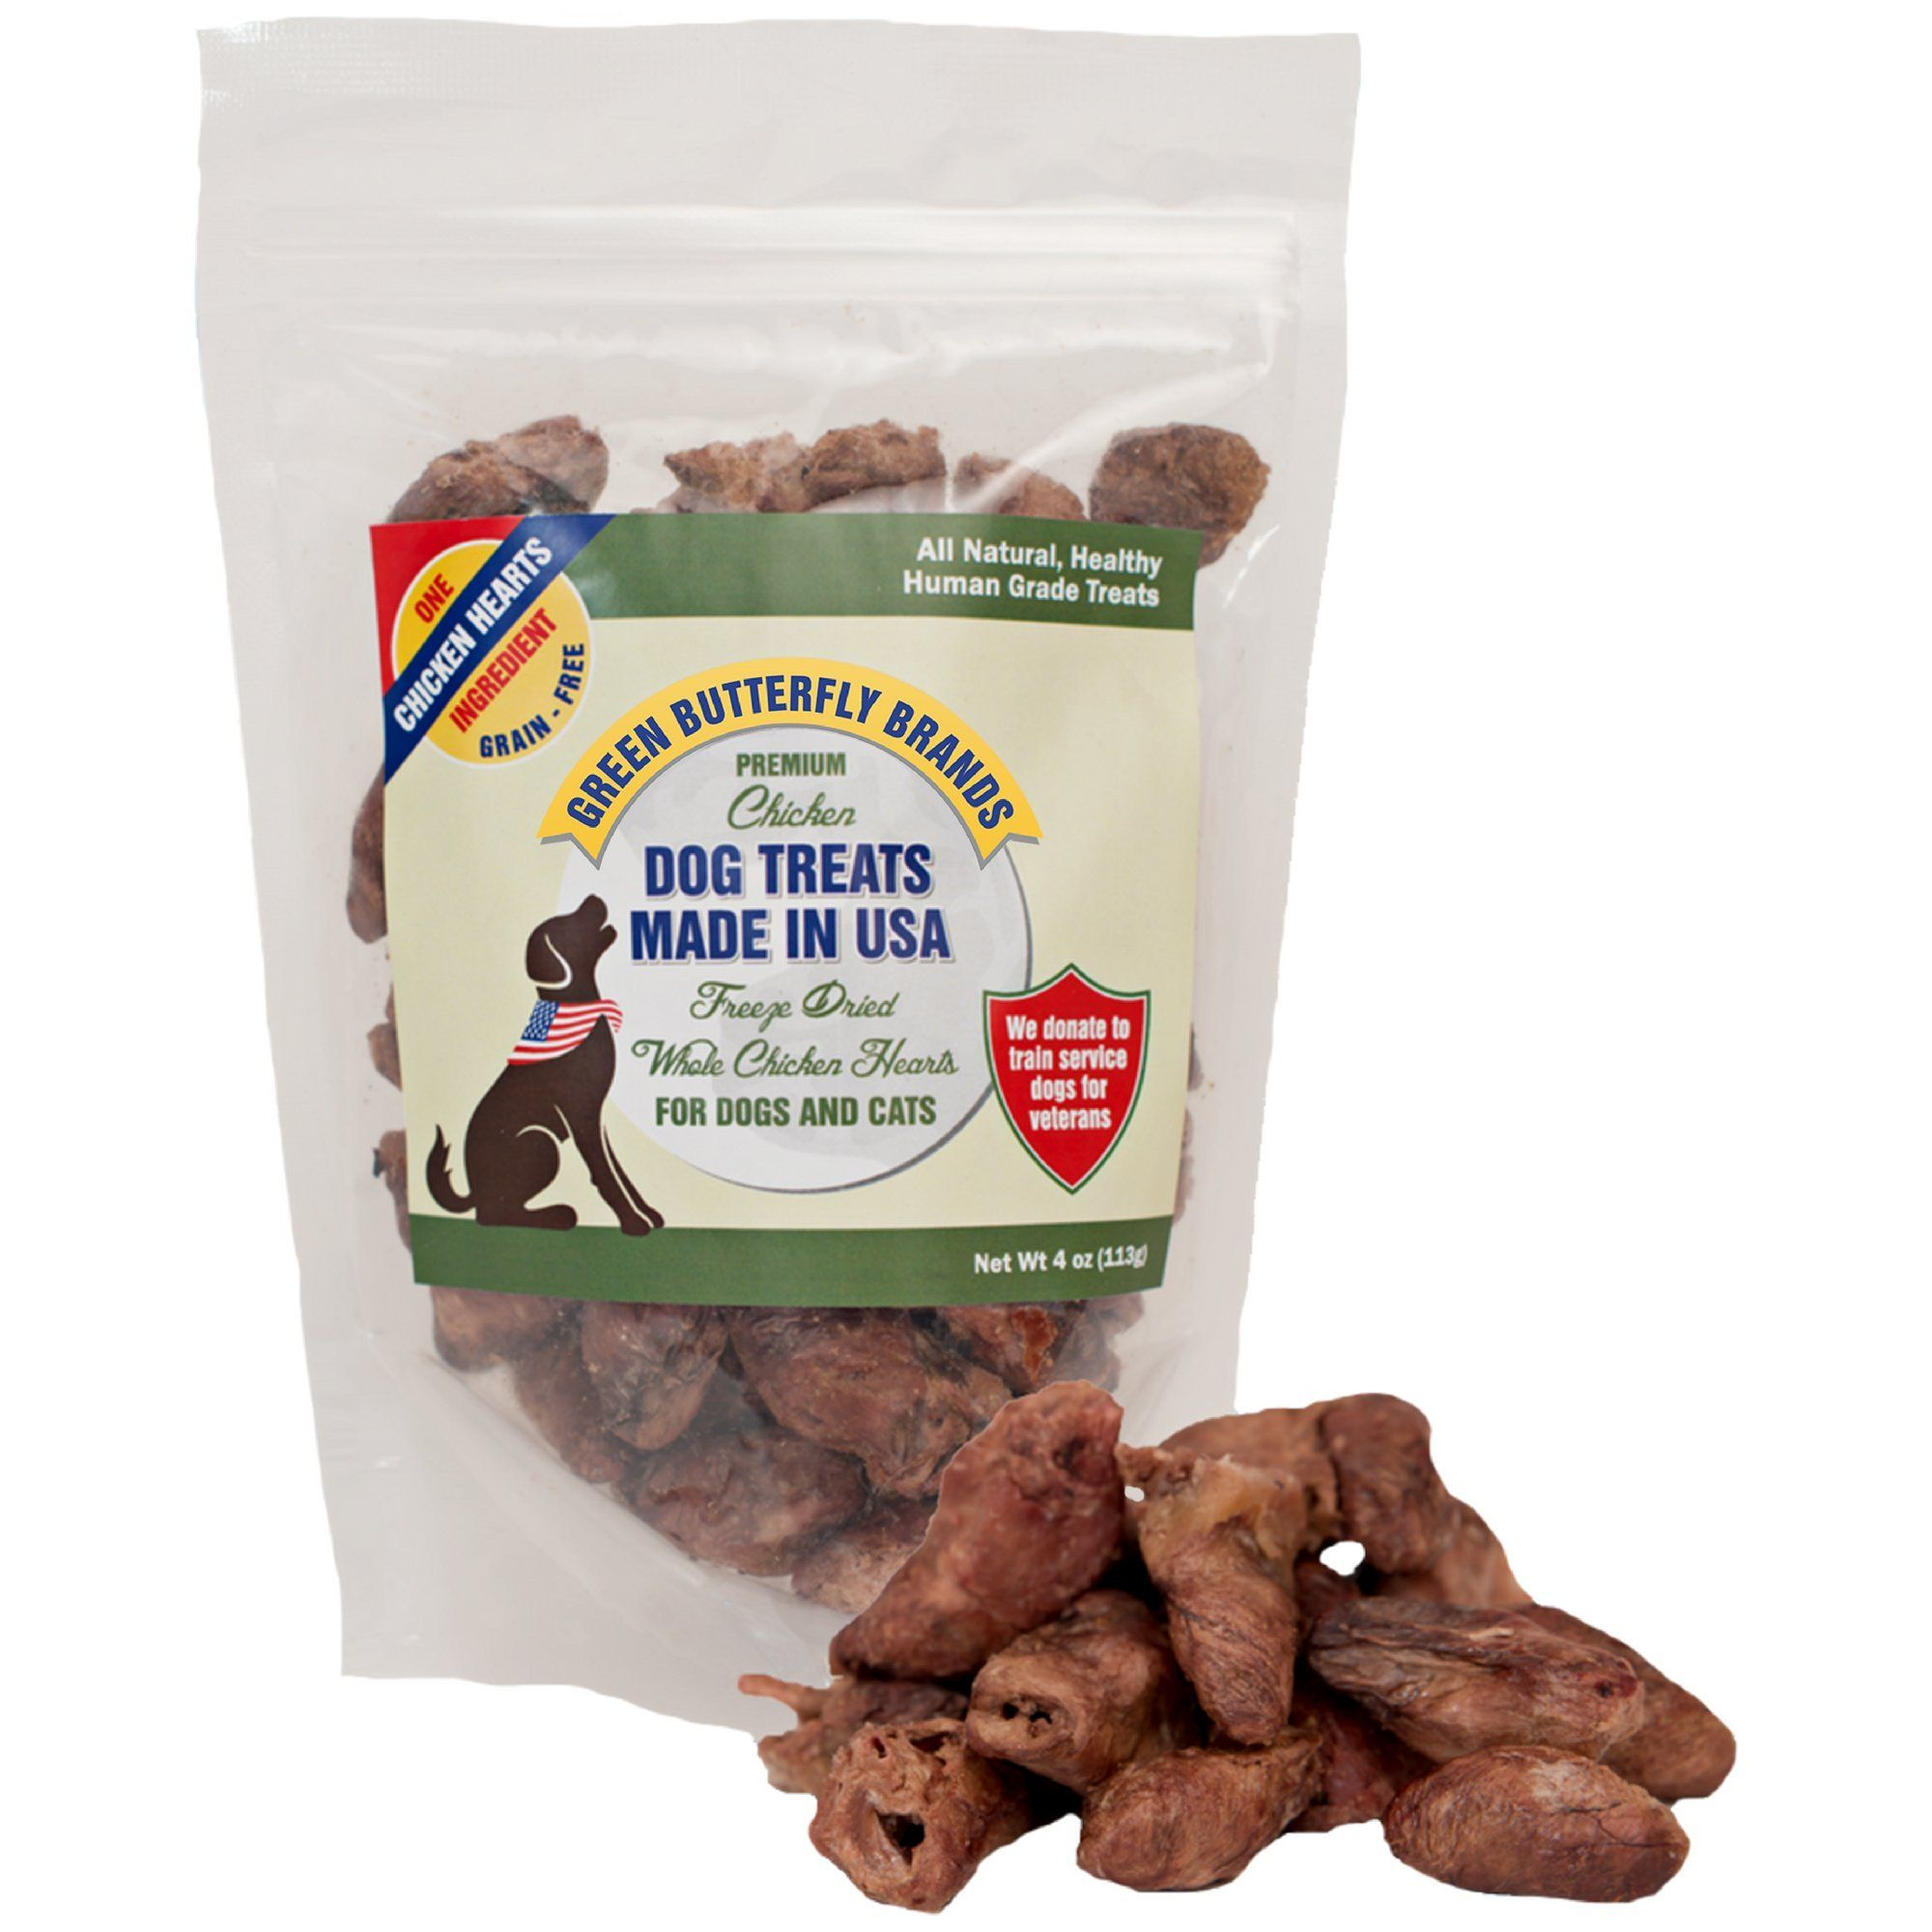 Green Butterfly Brands Freeze Dried Whole Chicken Hearts